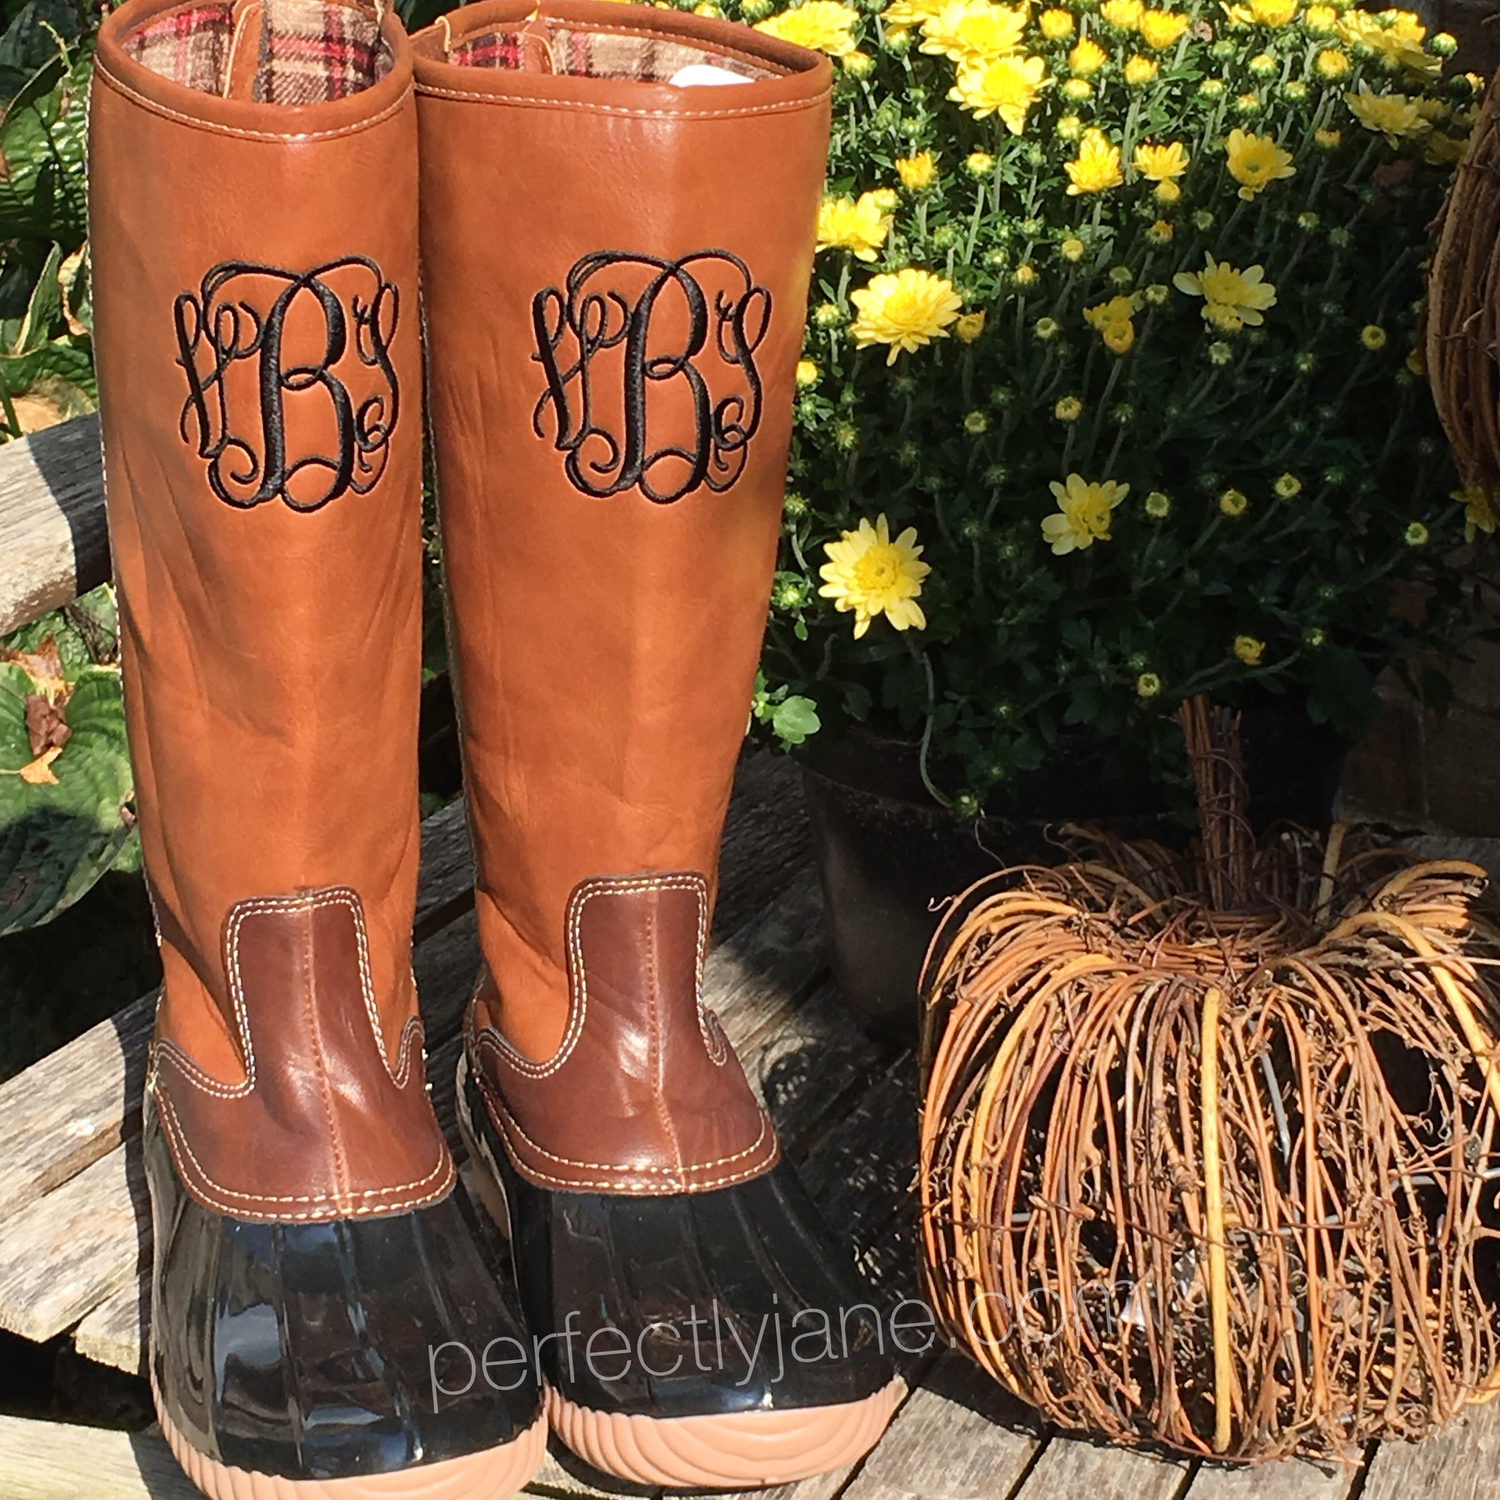 cd31e8346bcc1 Monogrammed Tall Duck Boots, Black